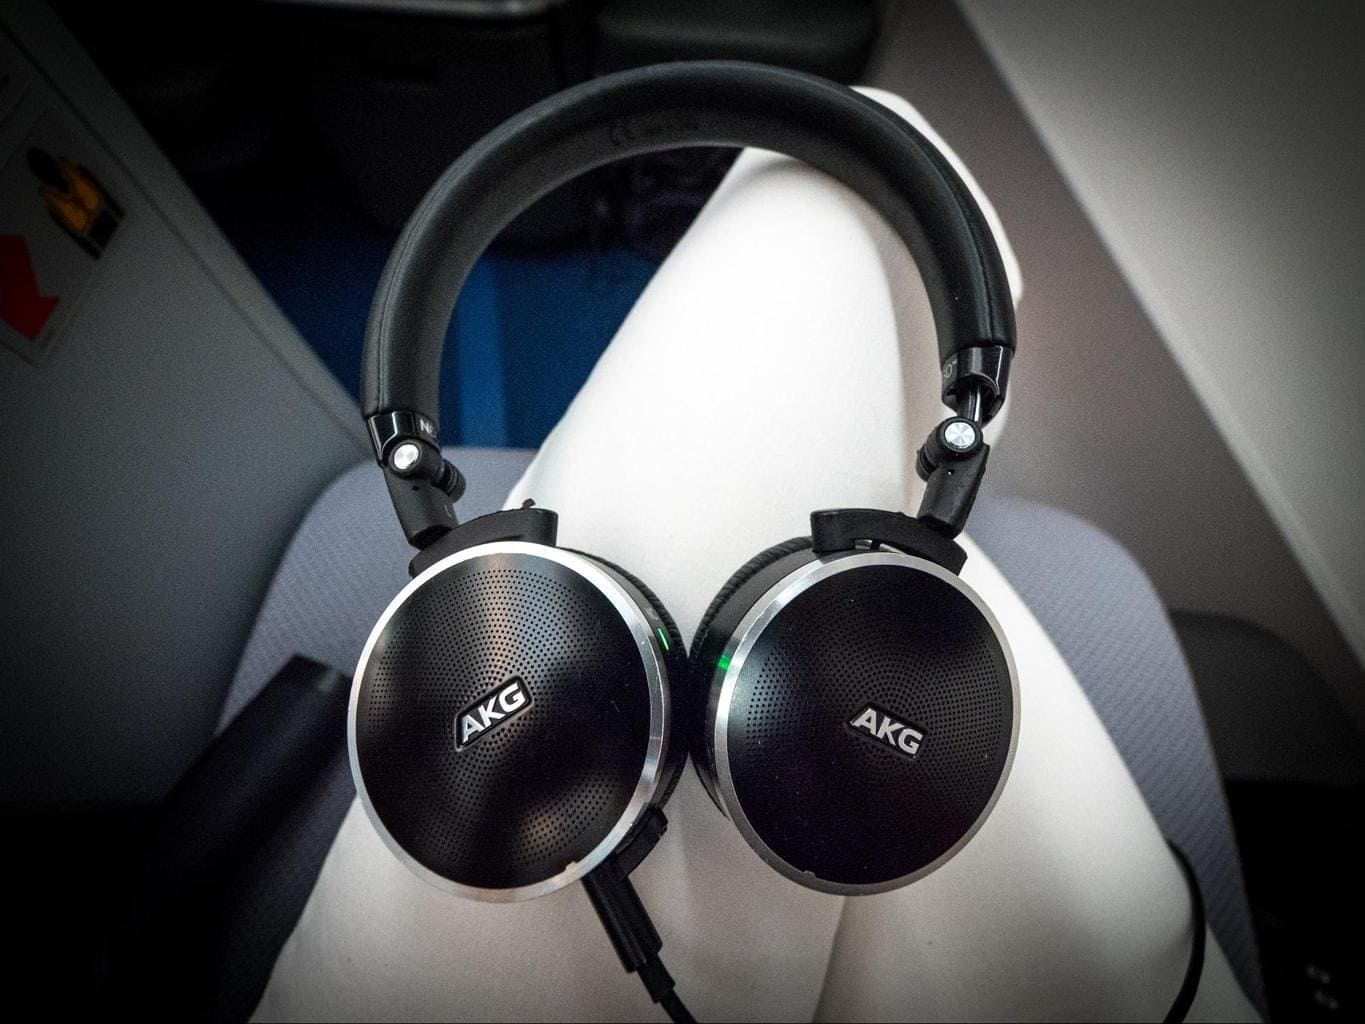 The noise cancelling headsets